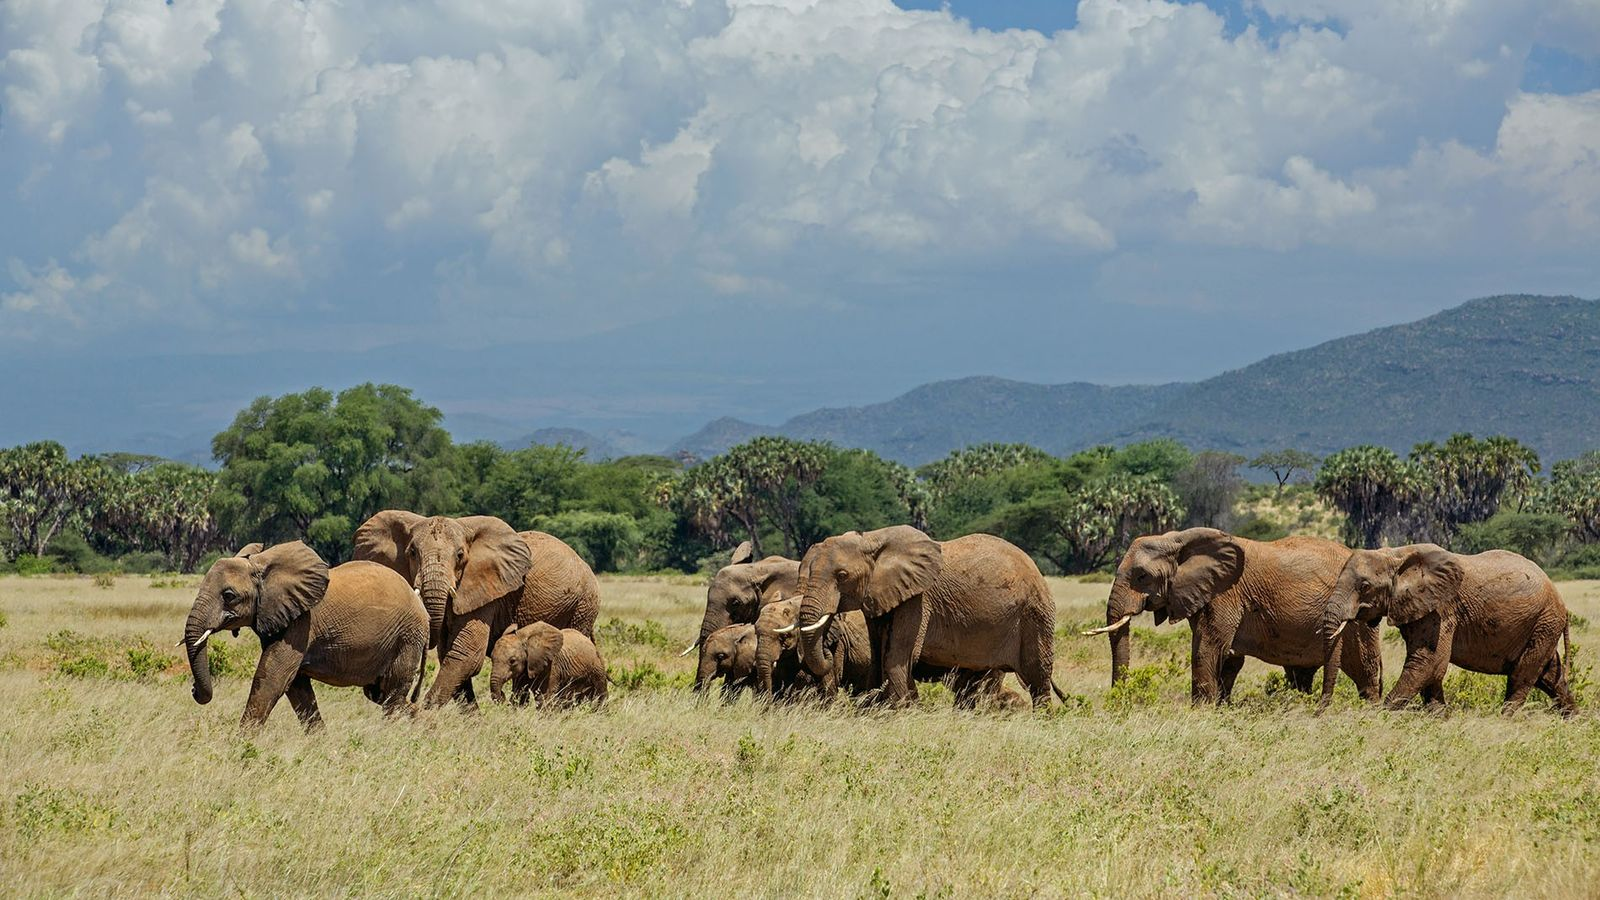 Amity and her family is one of the many families of wild elephants that zoologist Iain ...